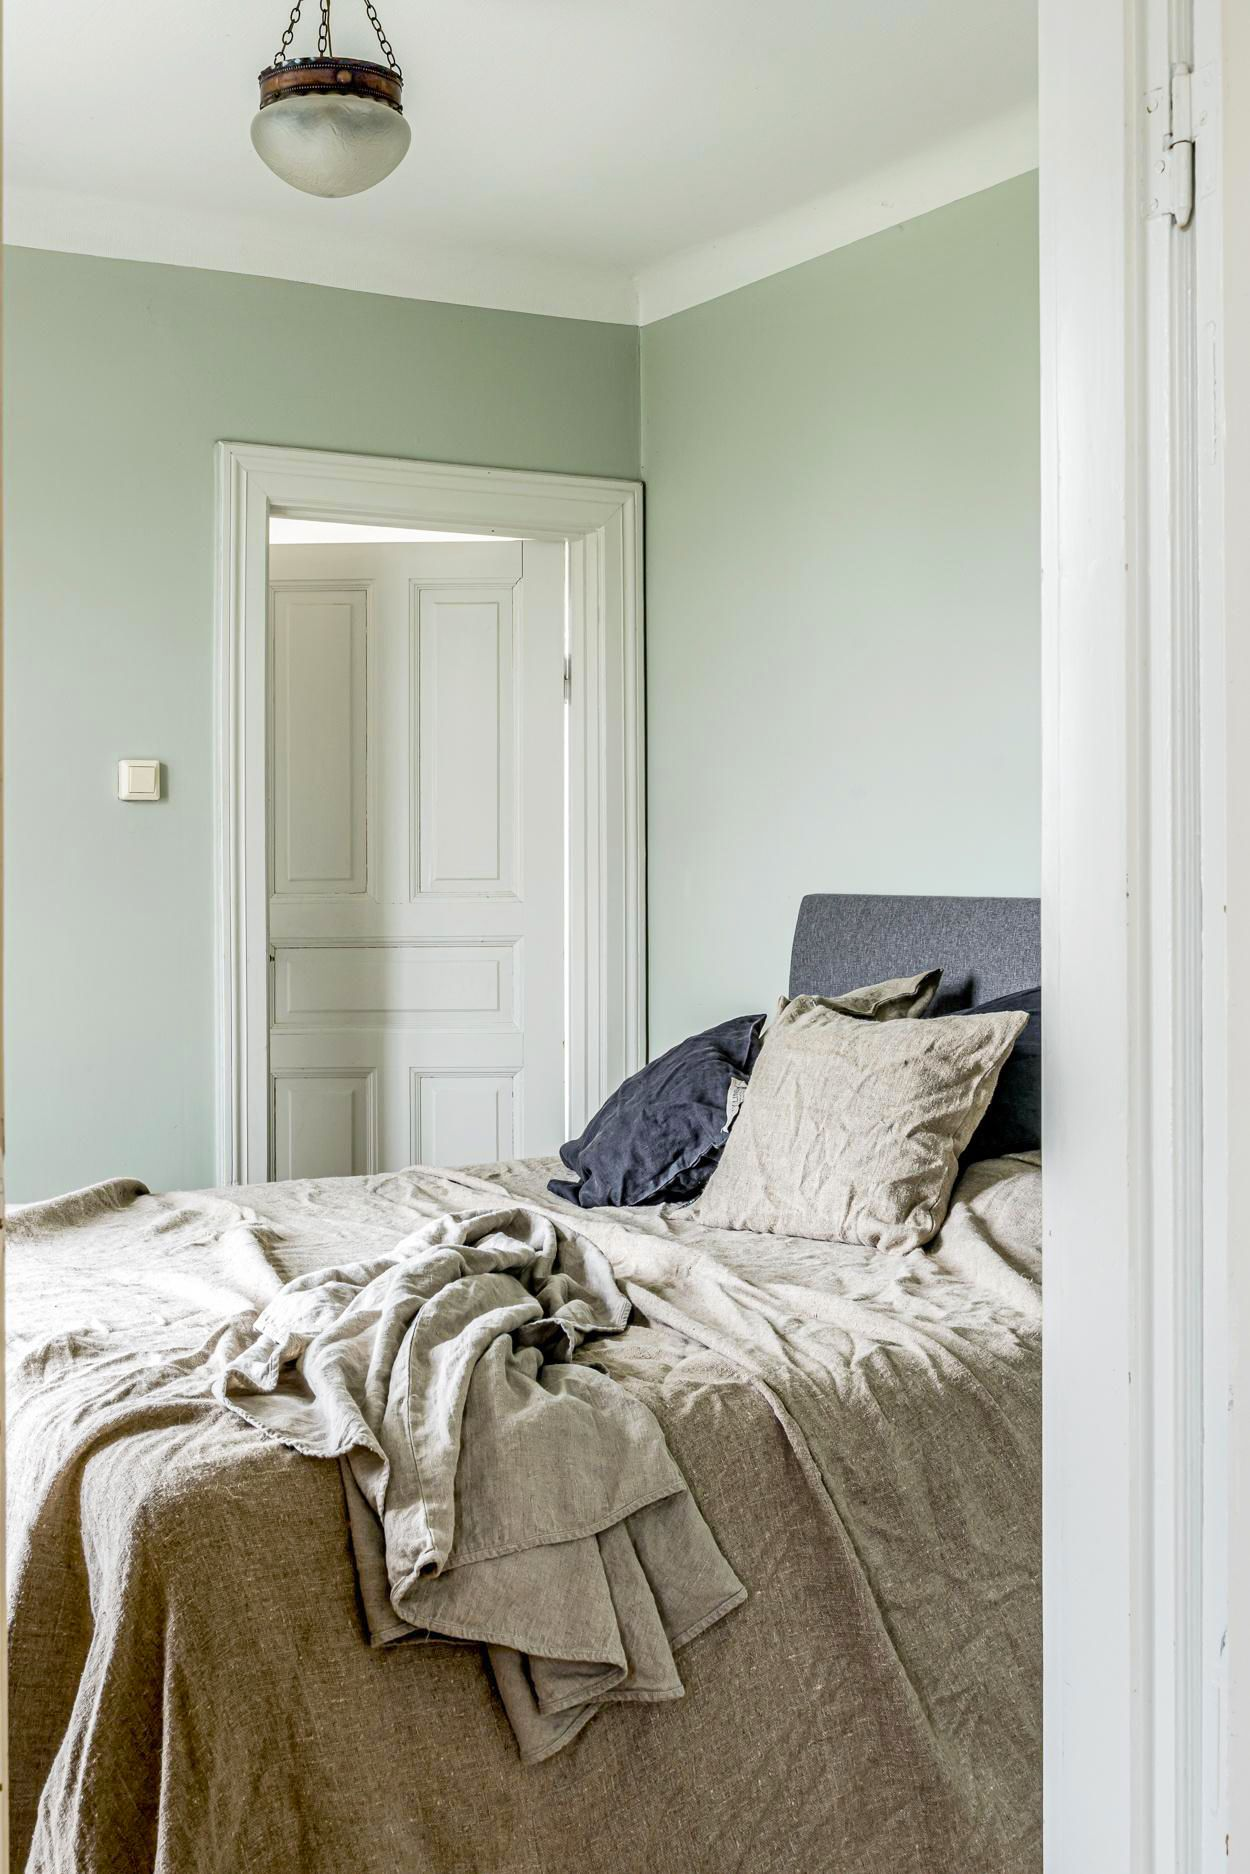 15 Calming Colors - Soothing and Relaxing Paint Colors for Every Room